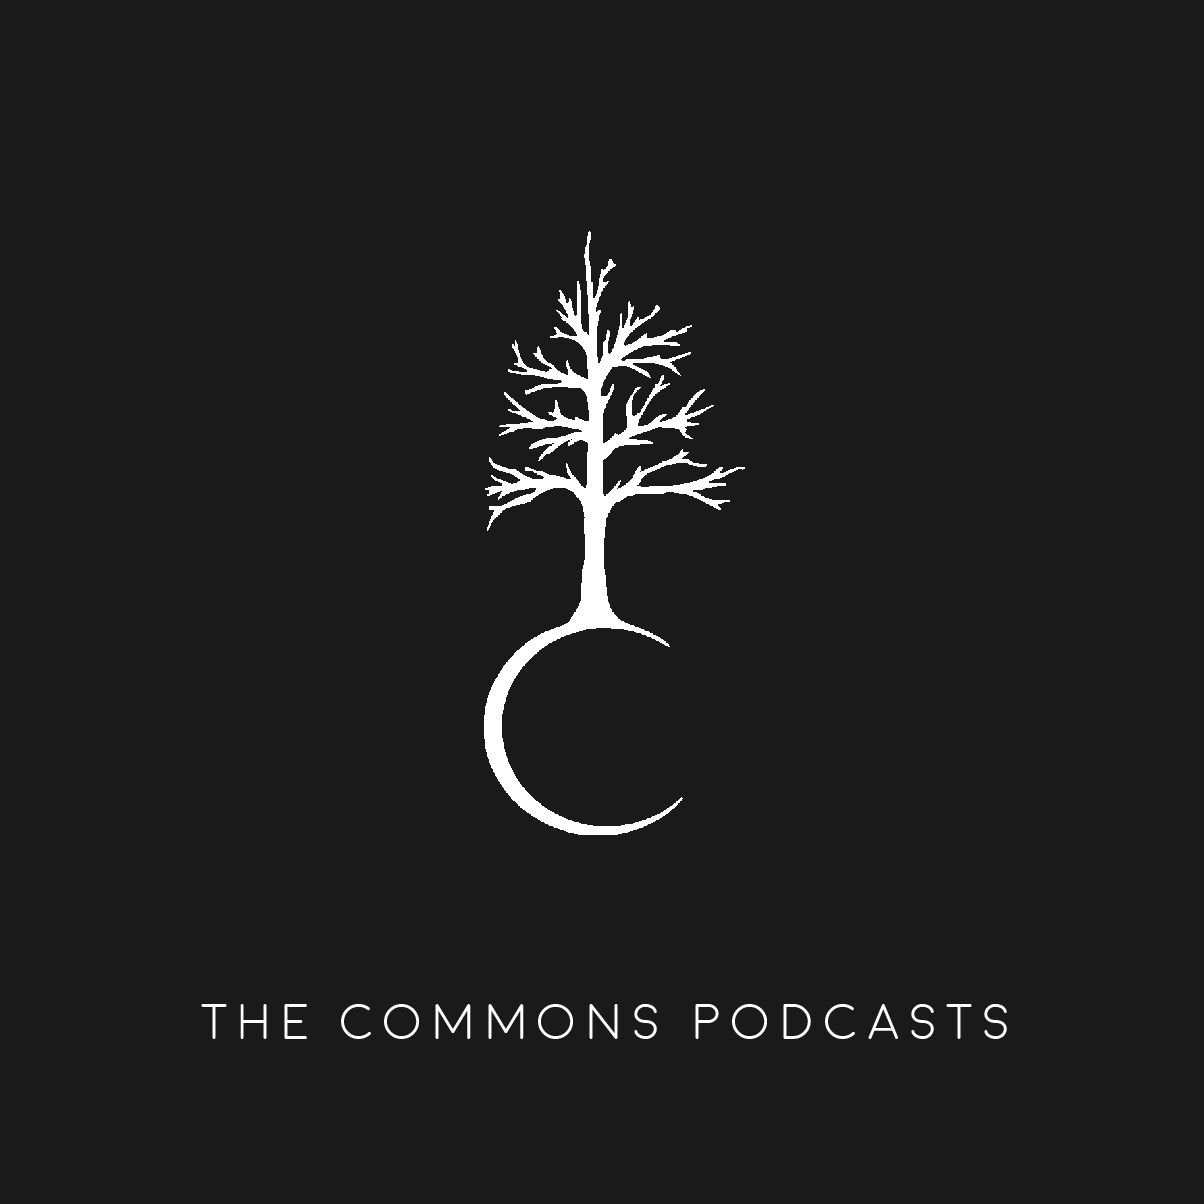 Flagstaff Commons Podcasts